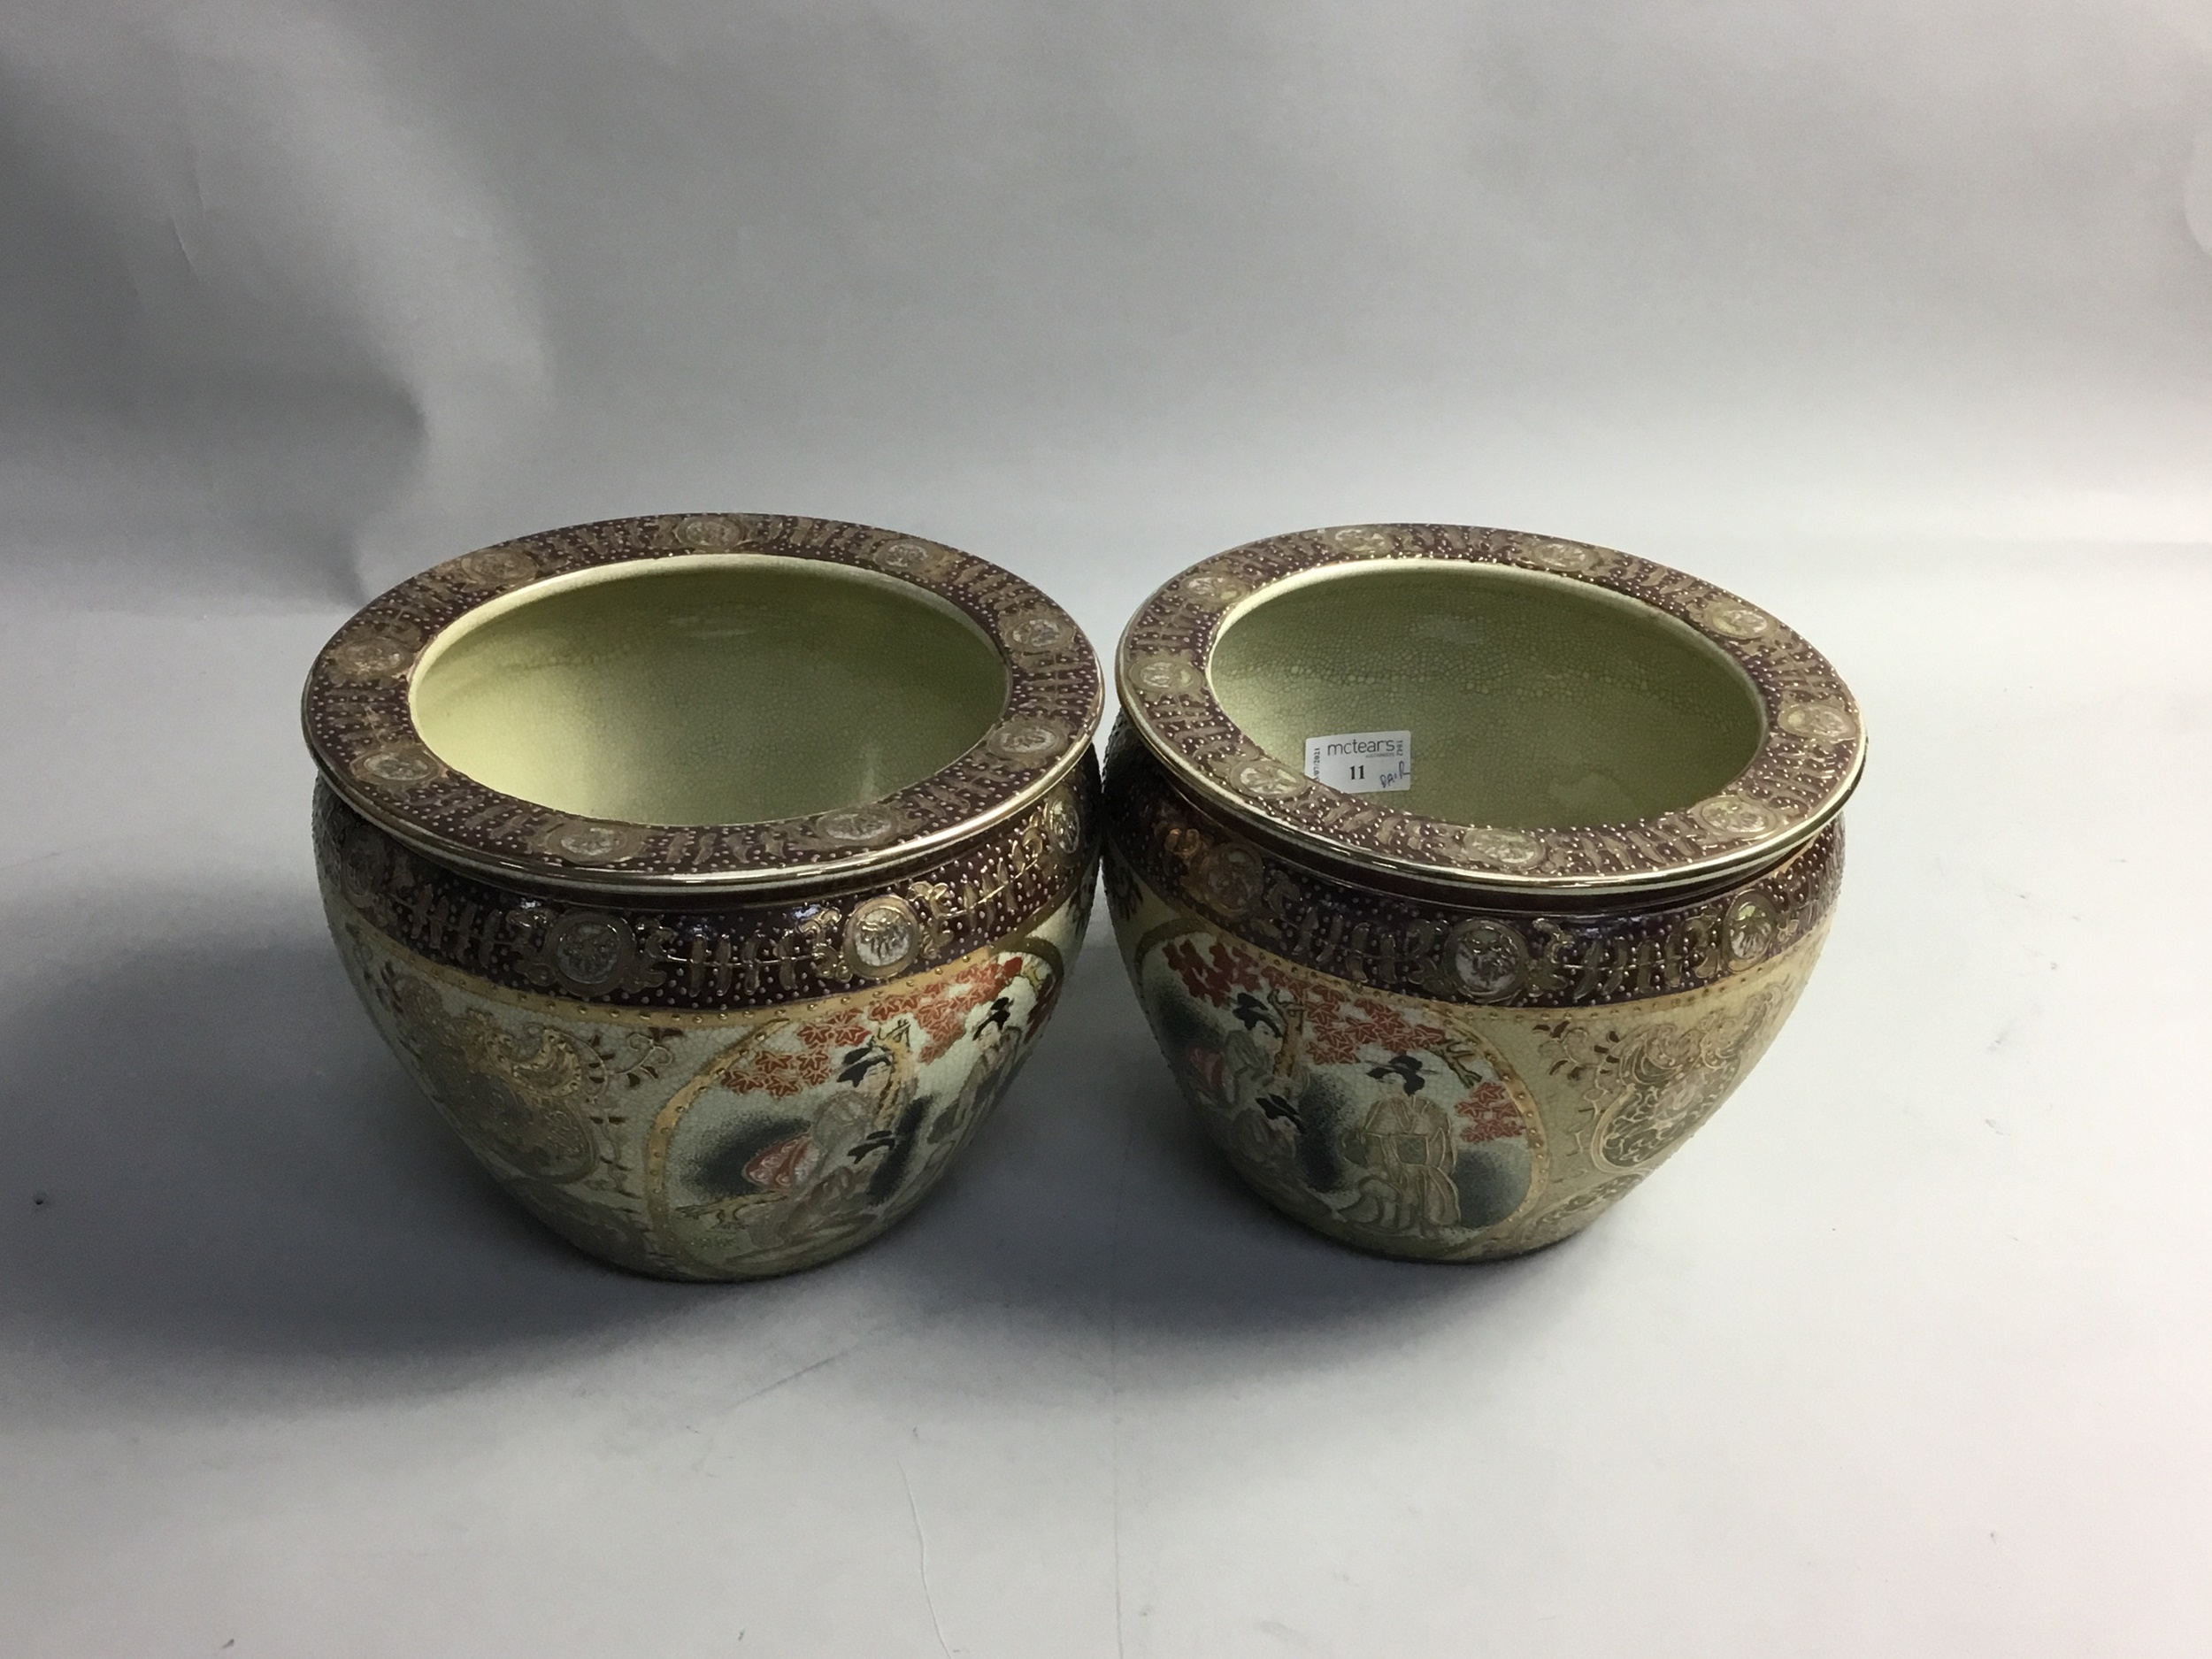 A PAIR OF 20TH CENTURY JAPANESE STONEWARE PLANTERS